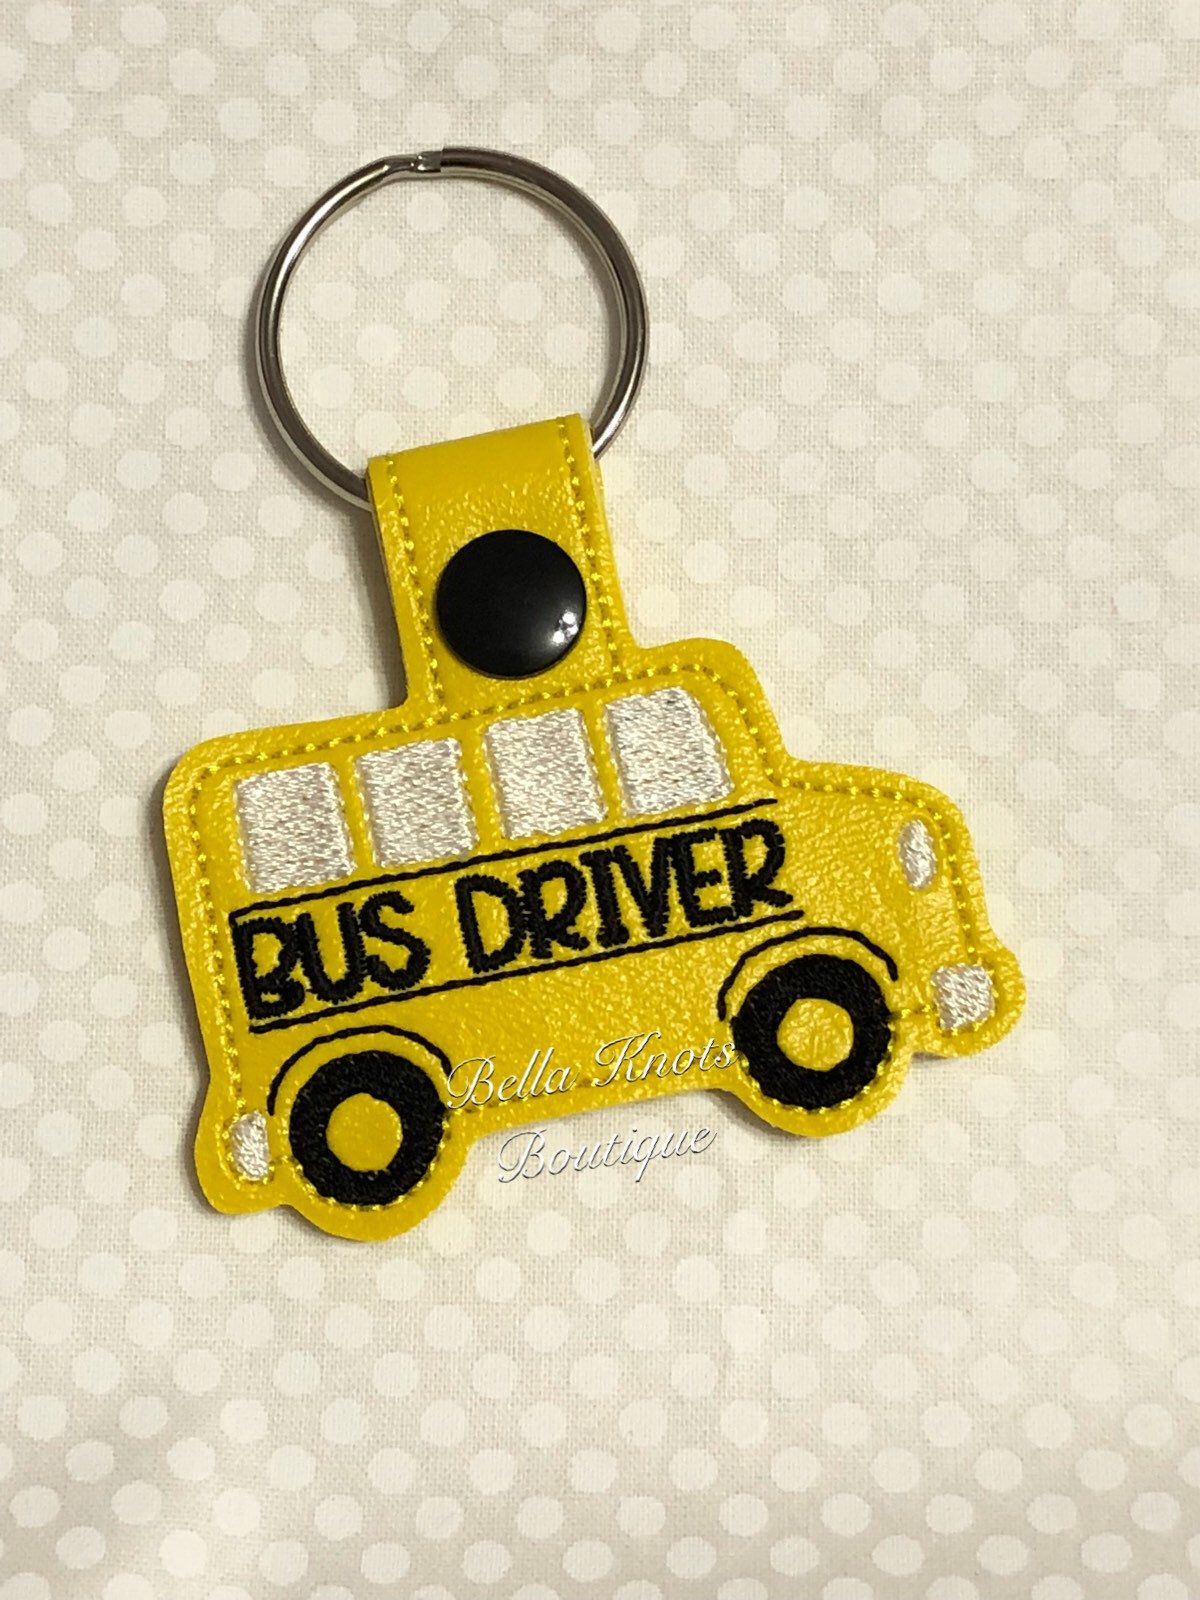 Bus Driver Keychain Etsy Bus Driver Gifts Bus Driver Bus Driver Appreciation